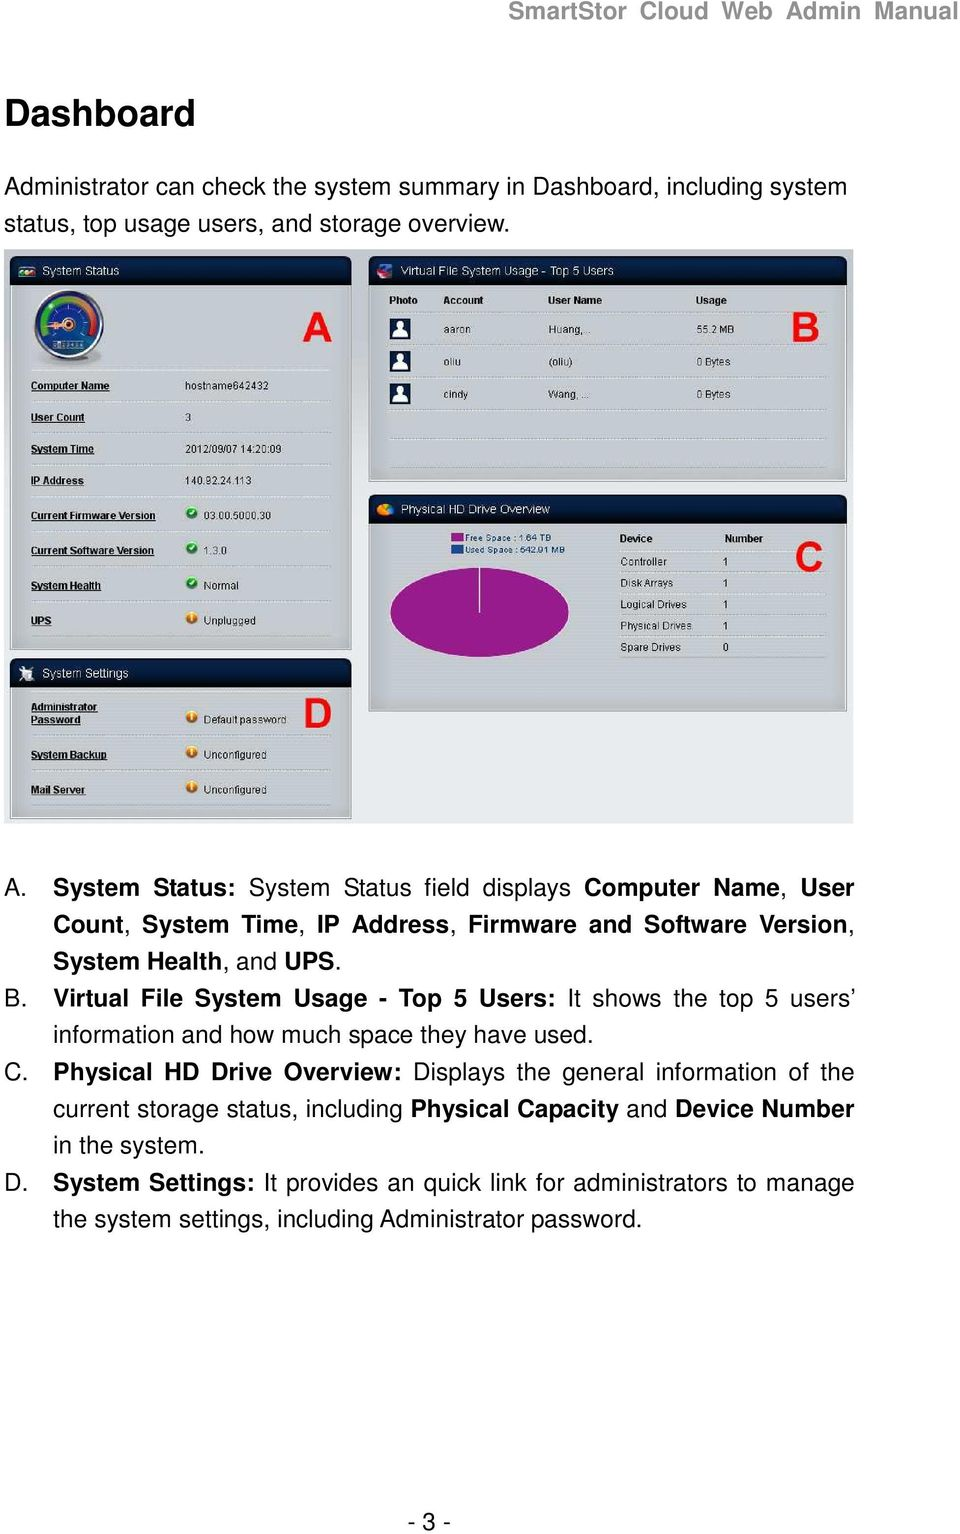 Physical HD Drive Overview: Displays the general information of the current storage status, including Physical Capacity and Device Number in the system. D. System Settings: It provides an quick link for administrators to manage the system settings, including Administrator password.